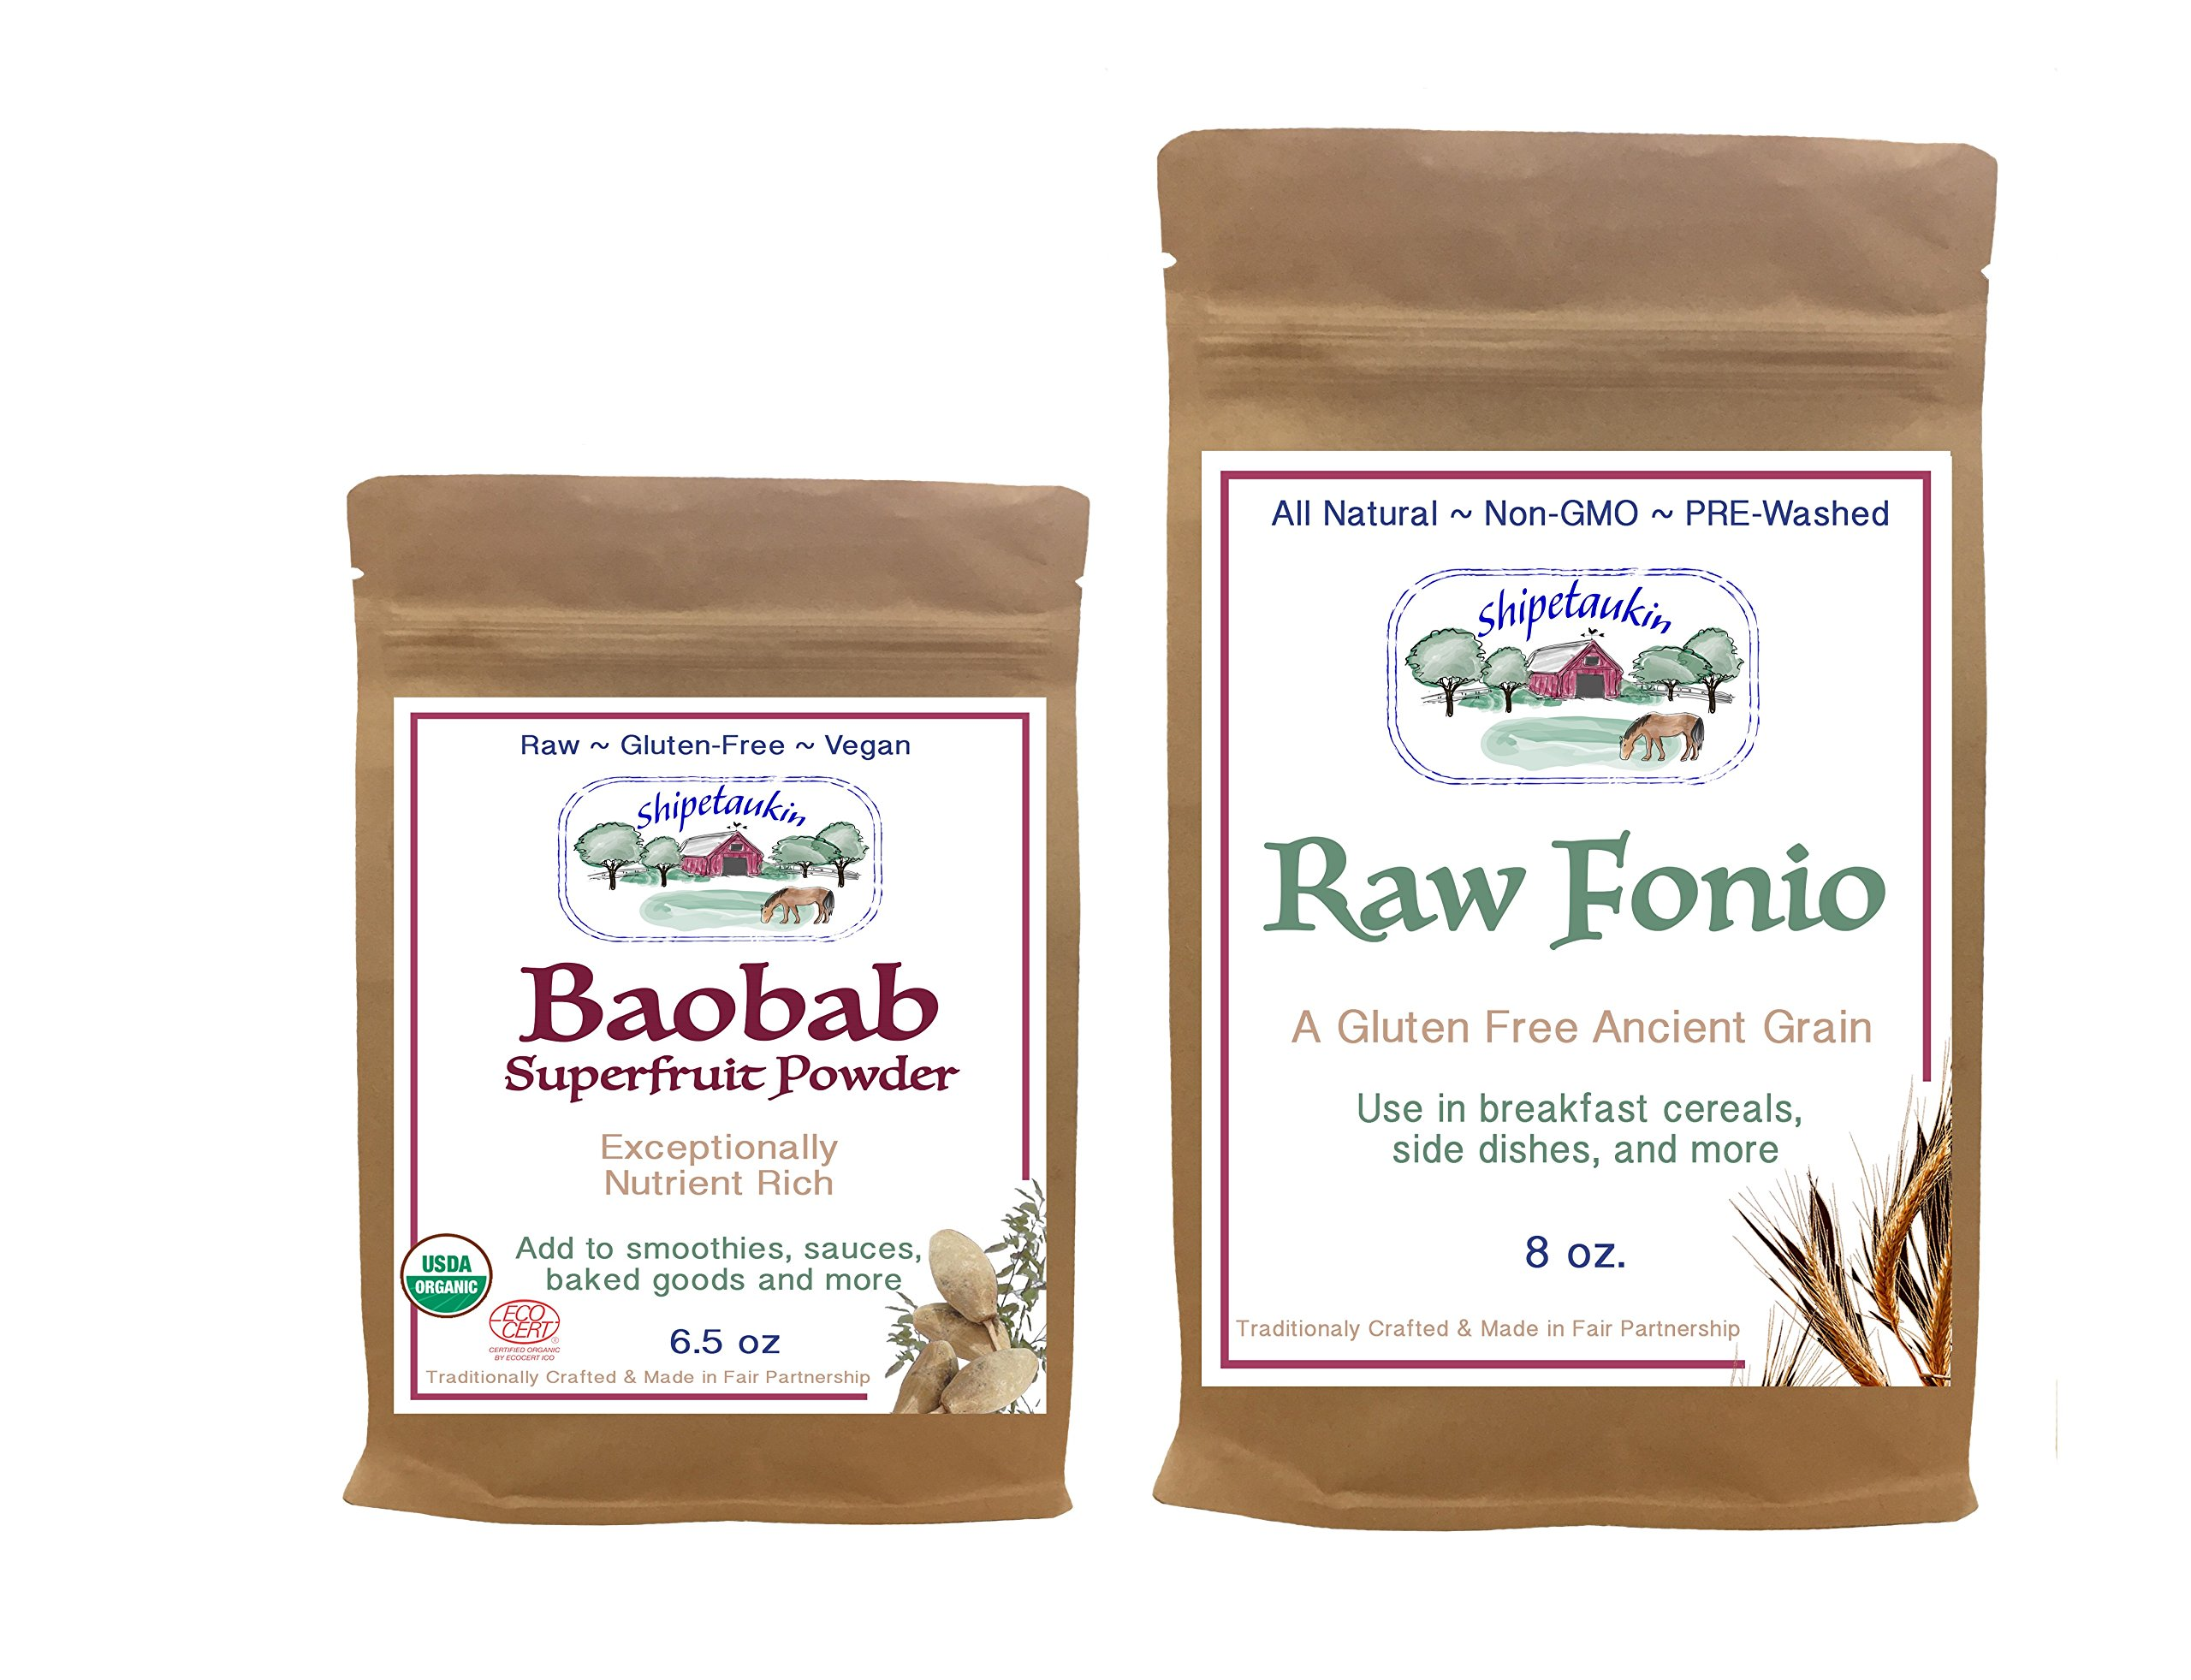 Shipetaukin Flavors of Africa Sampler Bundle: (1) Raw Fonio Ancient African Gluten Free Grain (8 Ounces), and (1) Baobab Superfruit Smoothie and Sauce Thickening Powder (6.5 Ounces)